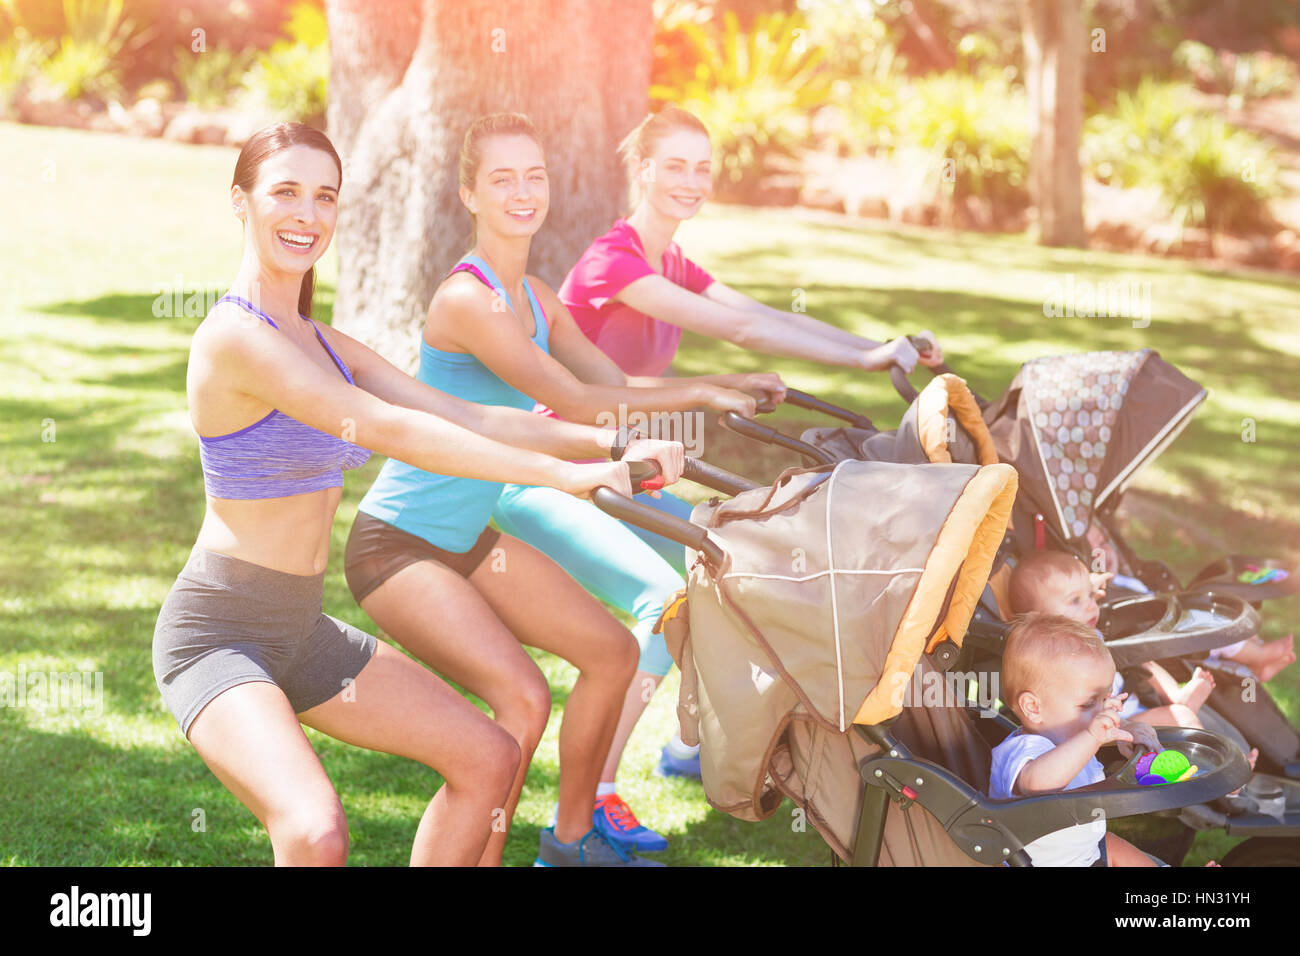 Women exercising with baby stroller in park - Stock Image